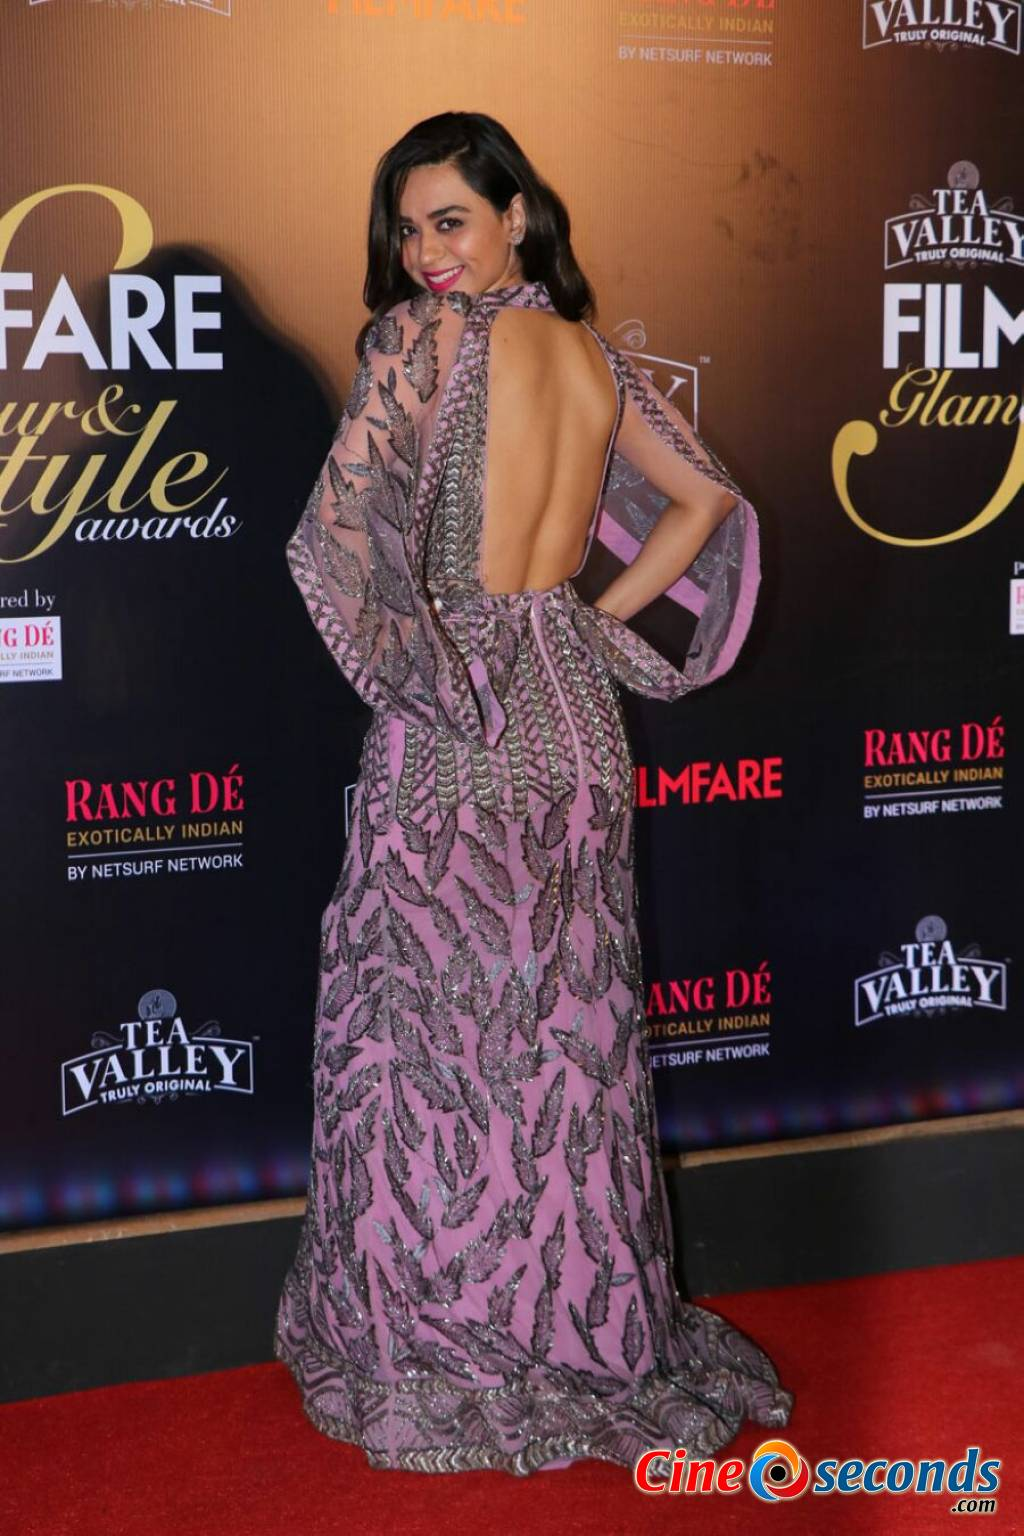 Filmfare-Glamour--Style-Awards-2019-Red-Carpet-(58)_71809.jpg